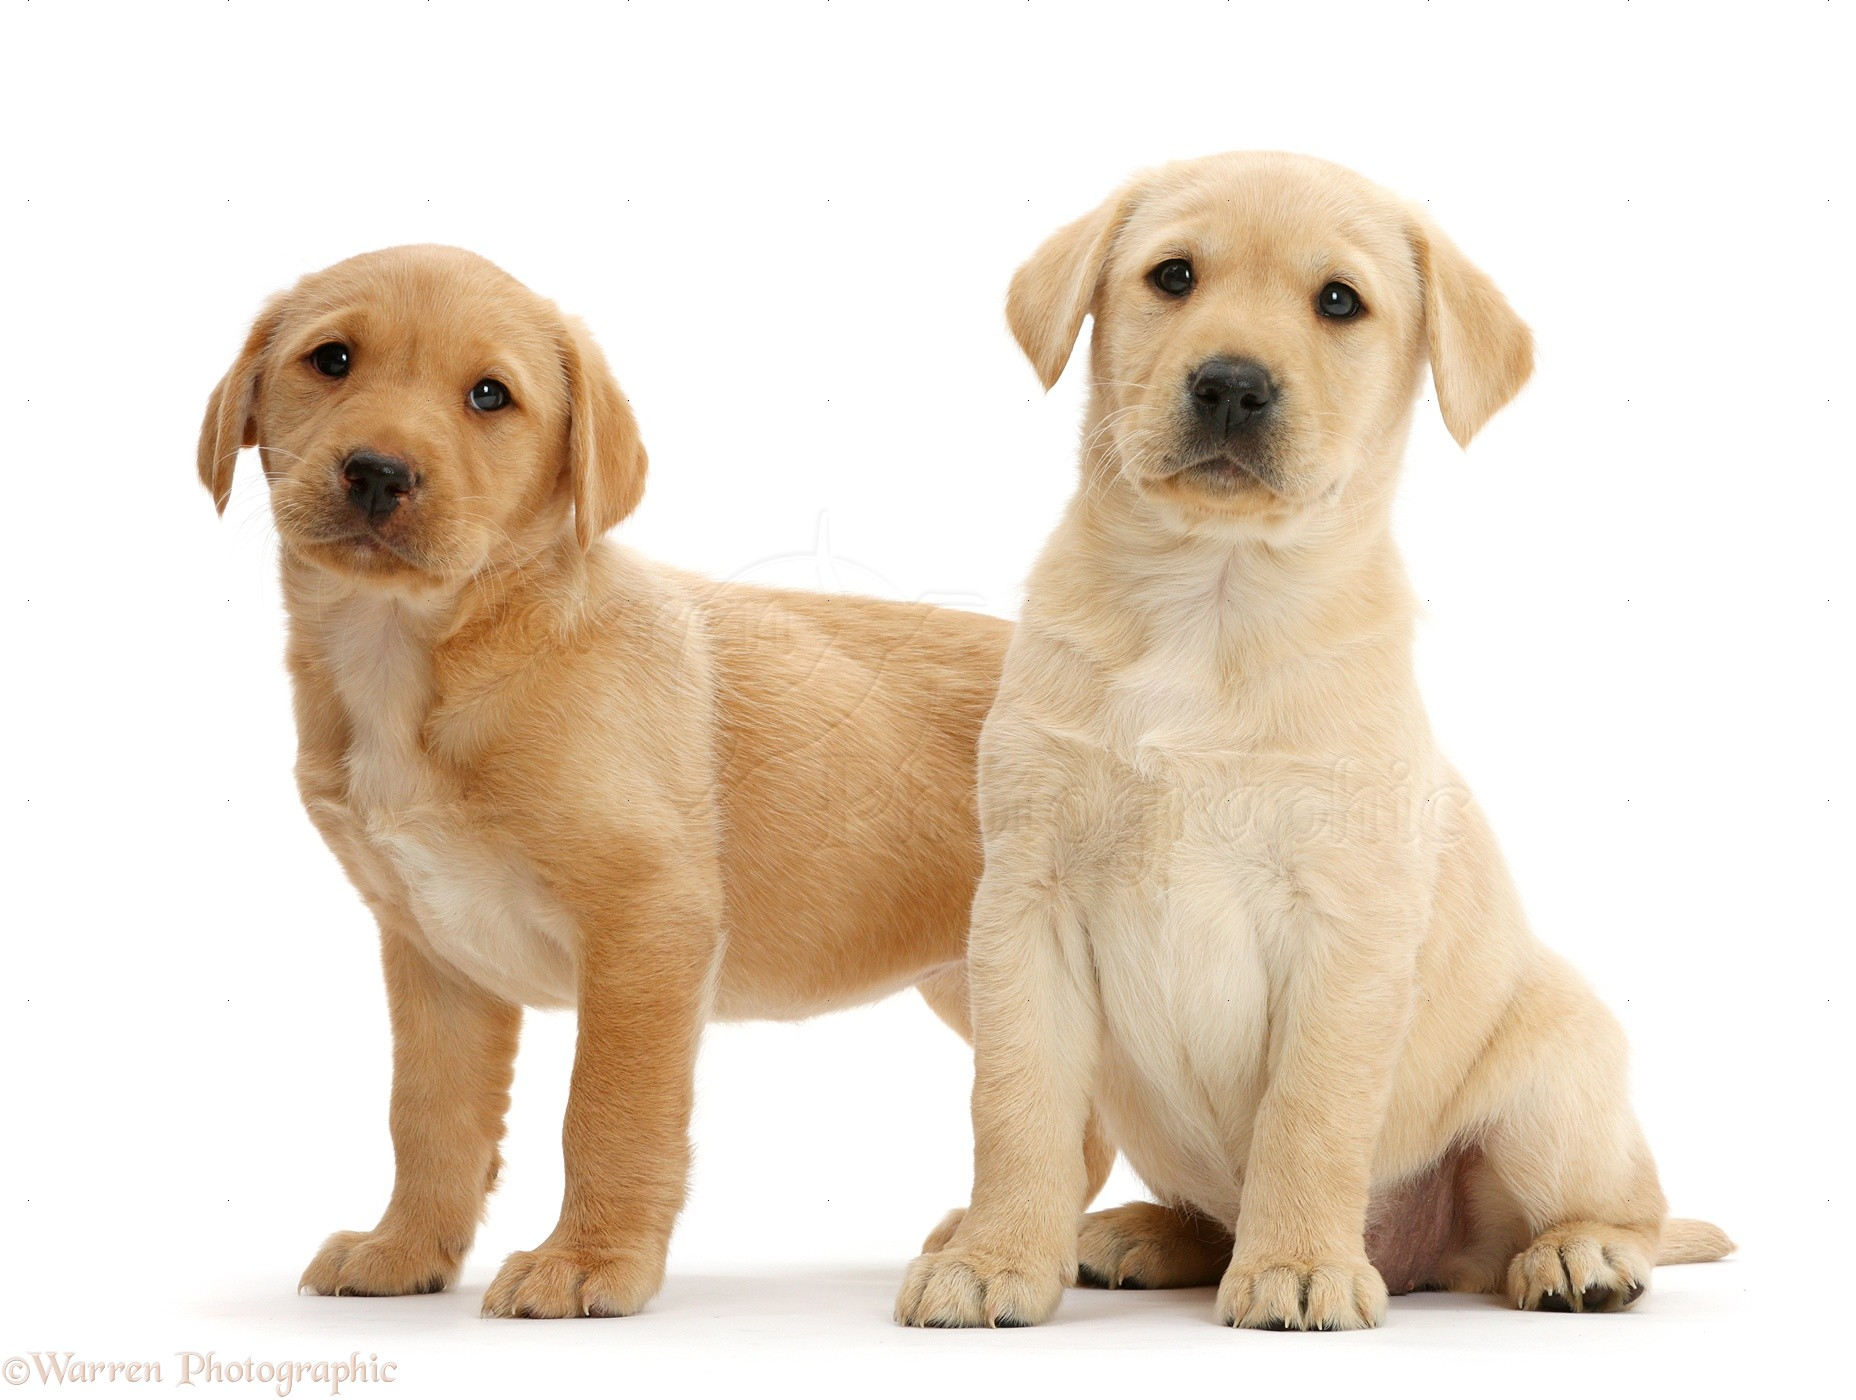 Dogs: Two cute Yellow Labrador puppies For Sale In Colorado USA